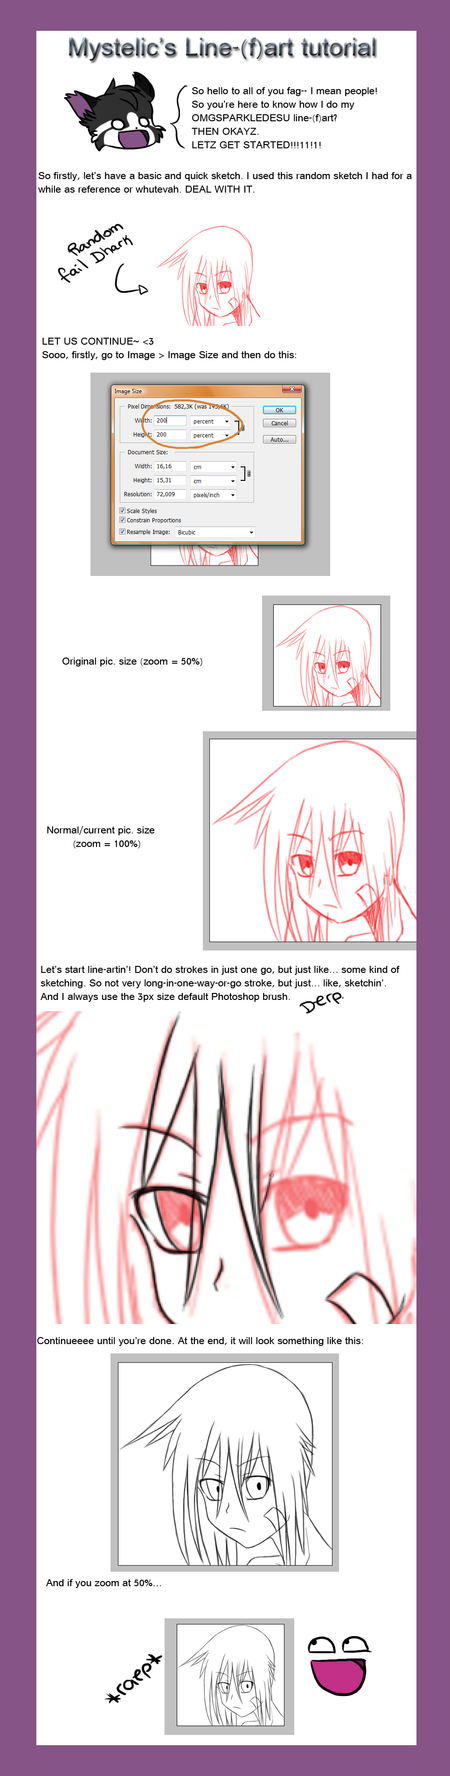 Line Art Tutorial : Line art tutorial by mystelic on deviantart